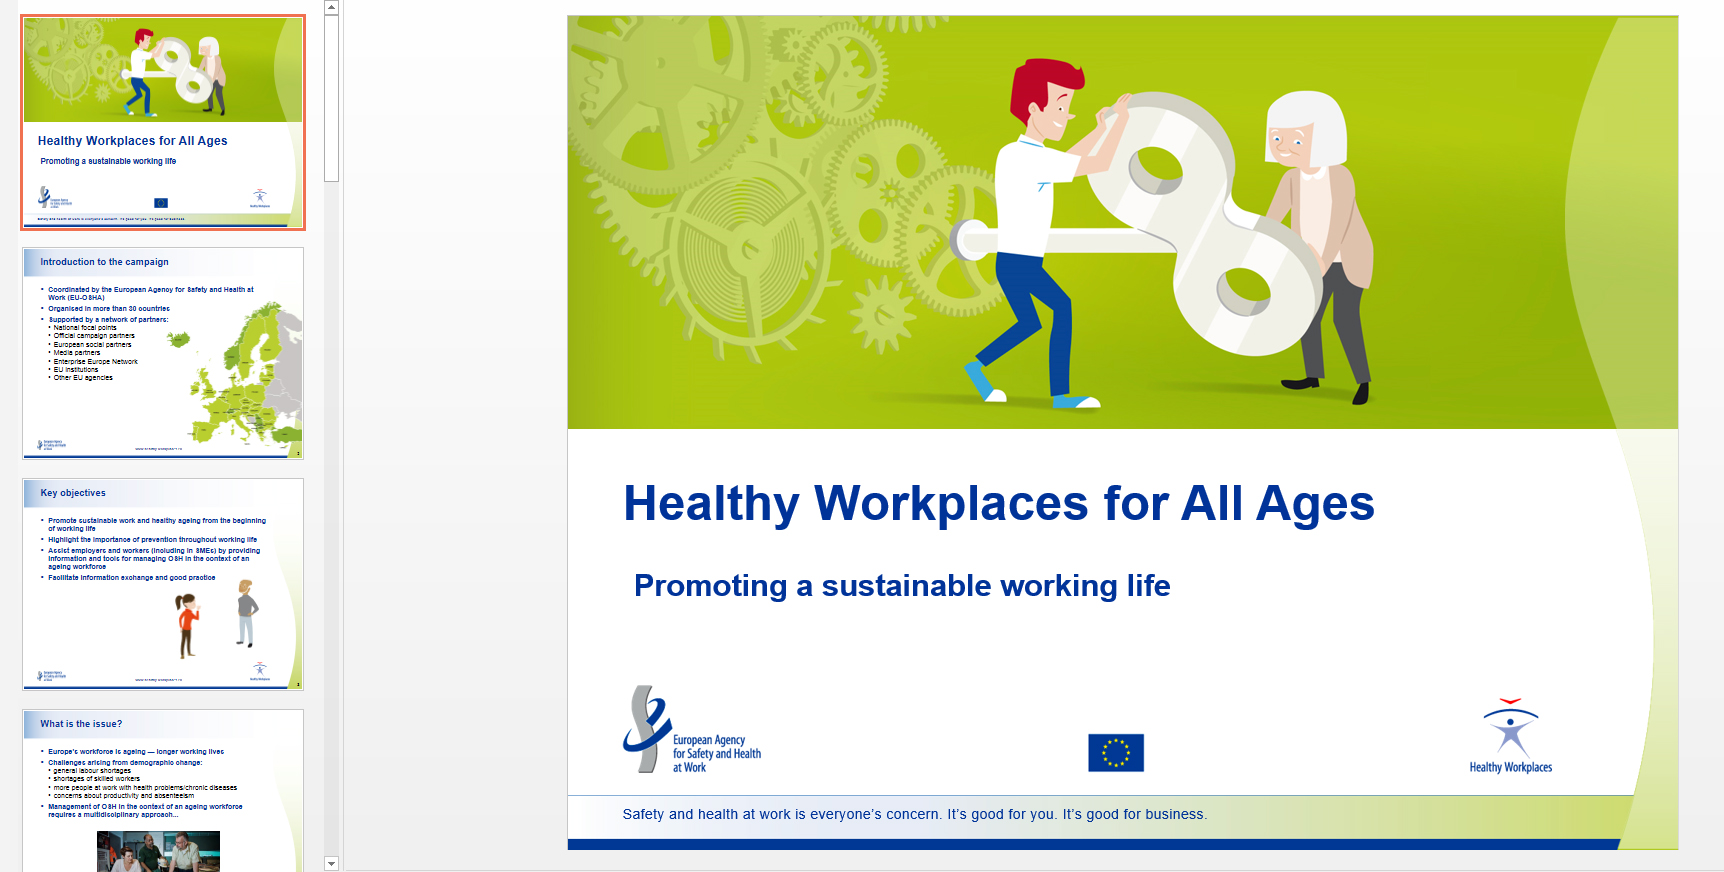 Healthy Workplaces for All Ages | PowerPoint presentations